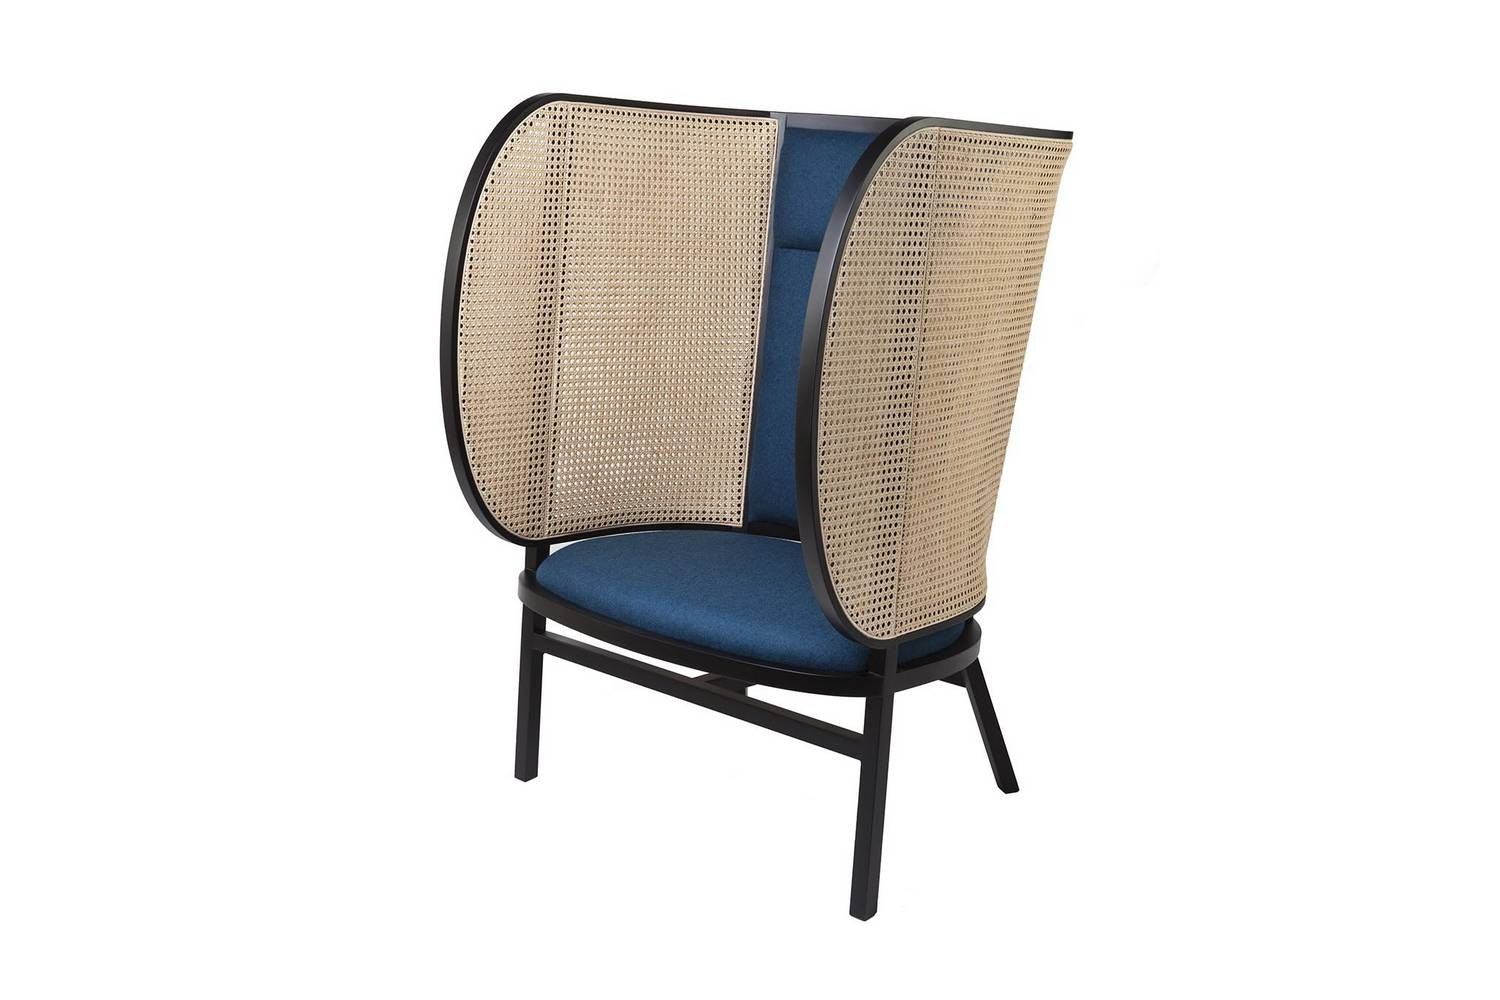 Genial Hideout Lounge Chair By Front For Wiener GTV Design